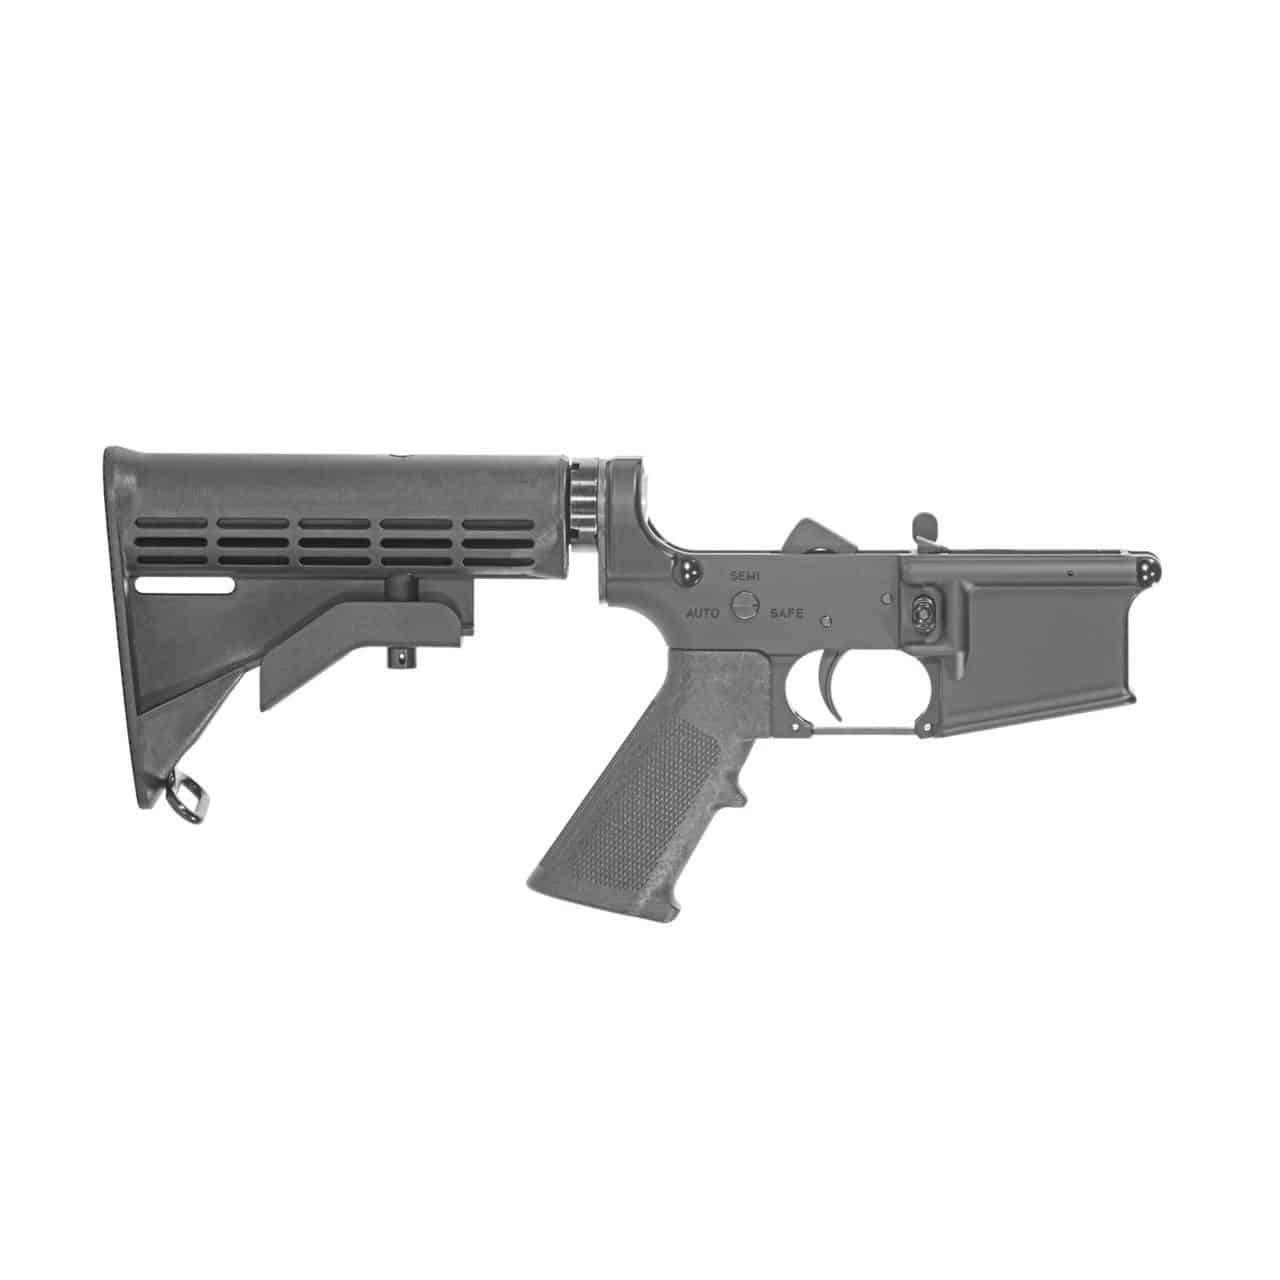 AR15  M4 LOWER RECEIVER, ANDRO CORP